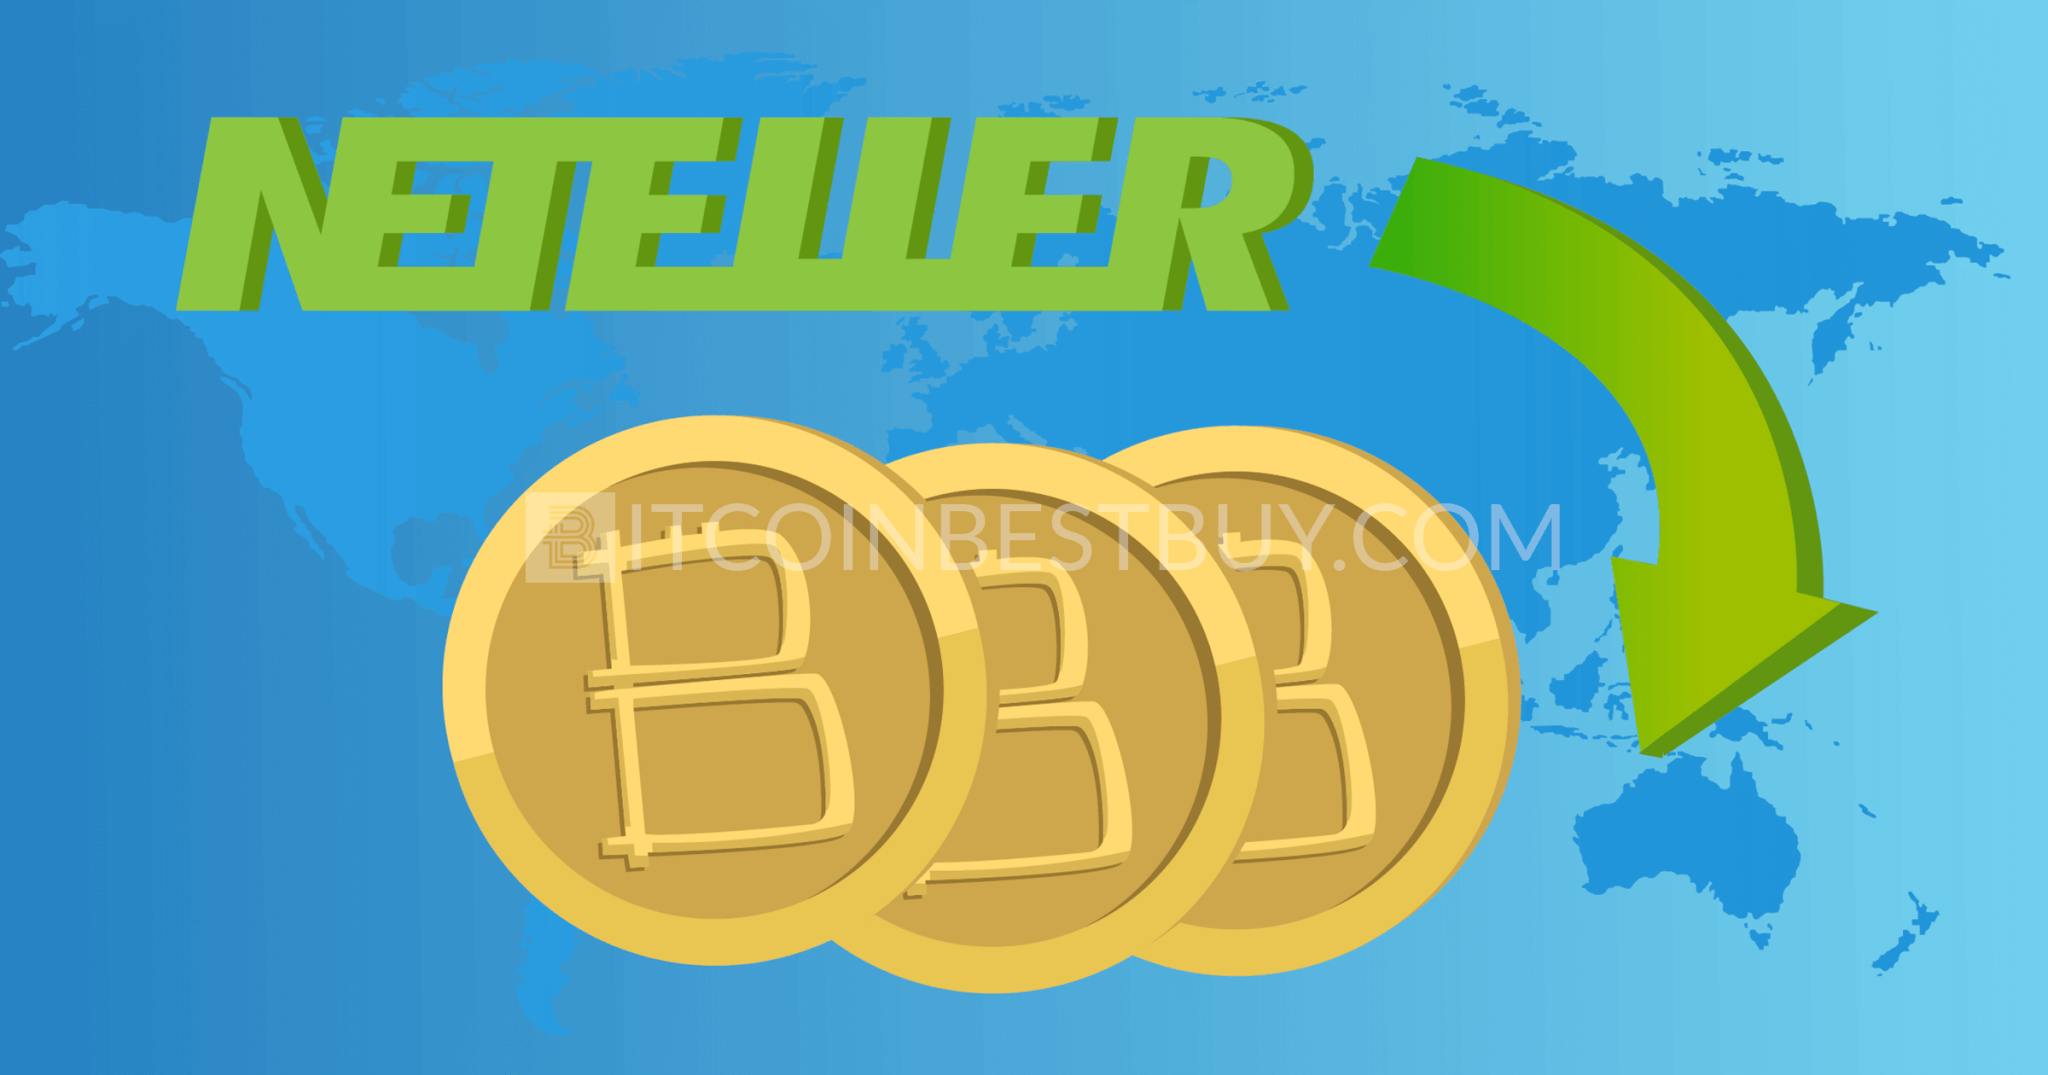 How to buy bitcoin using neteller list of the best exchanges it is thus important to use a payment way that would get you btc cheaply instantly and safely out of many options neteller comes as one of the most ccuart Images